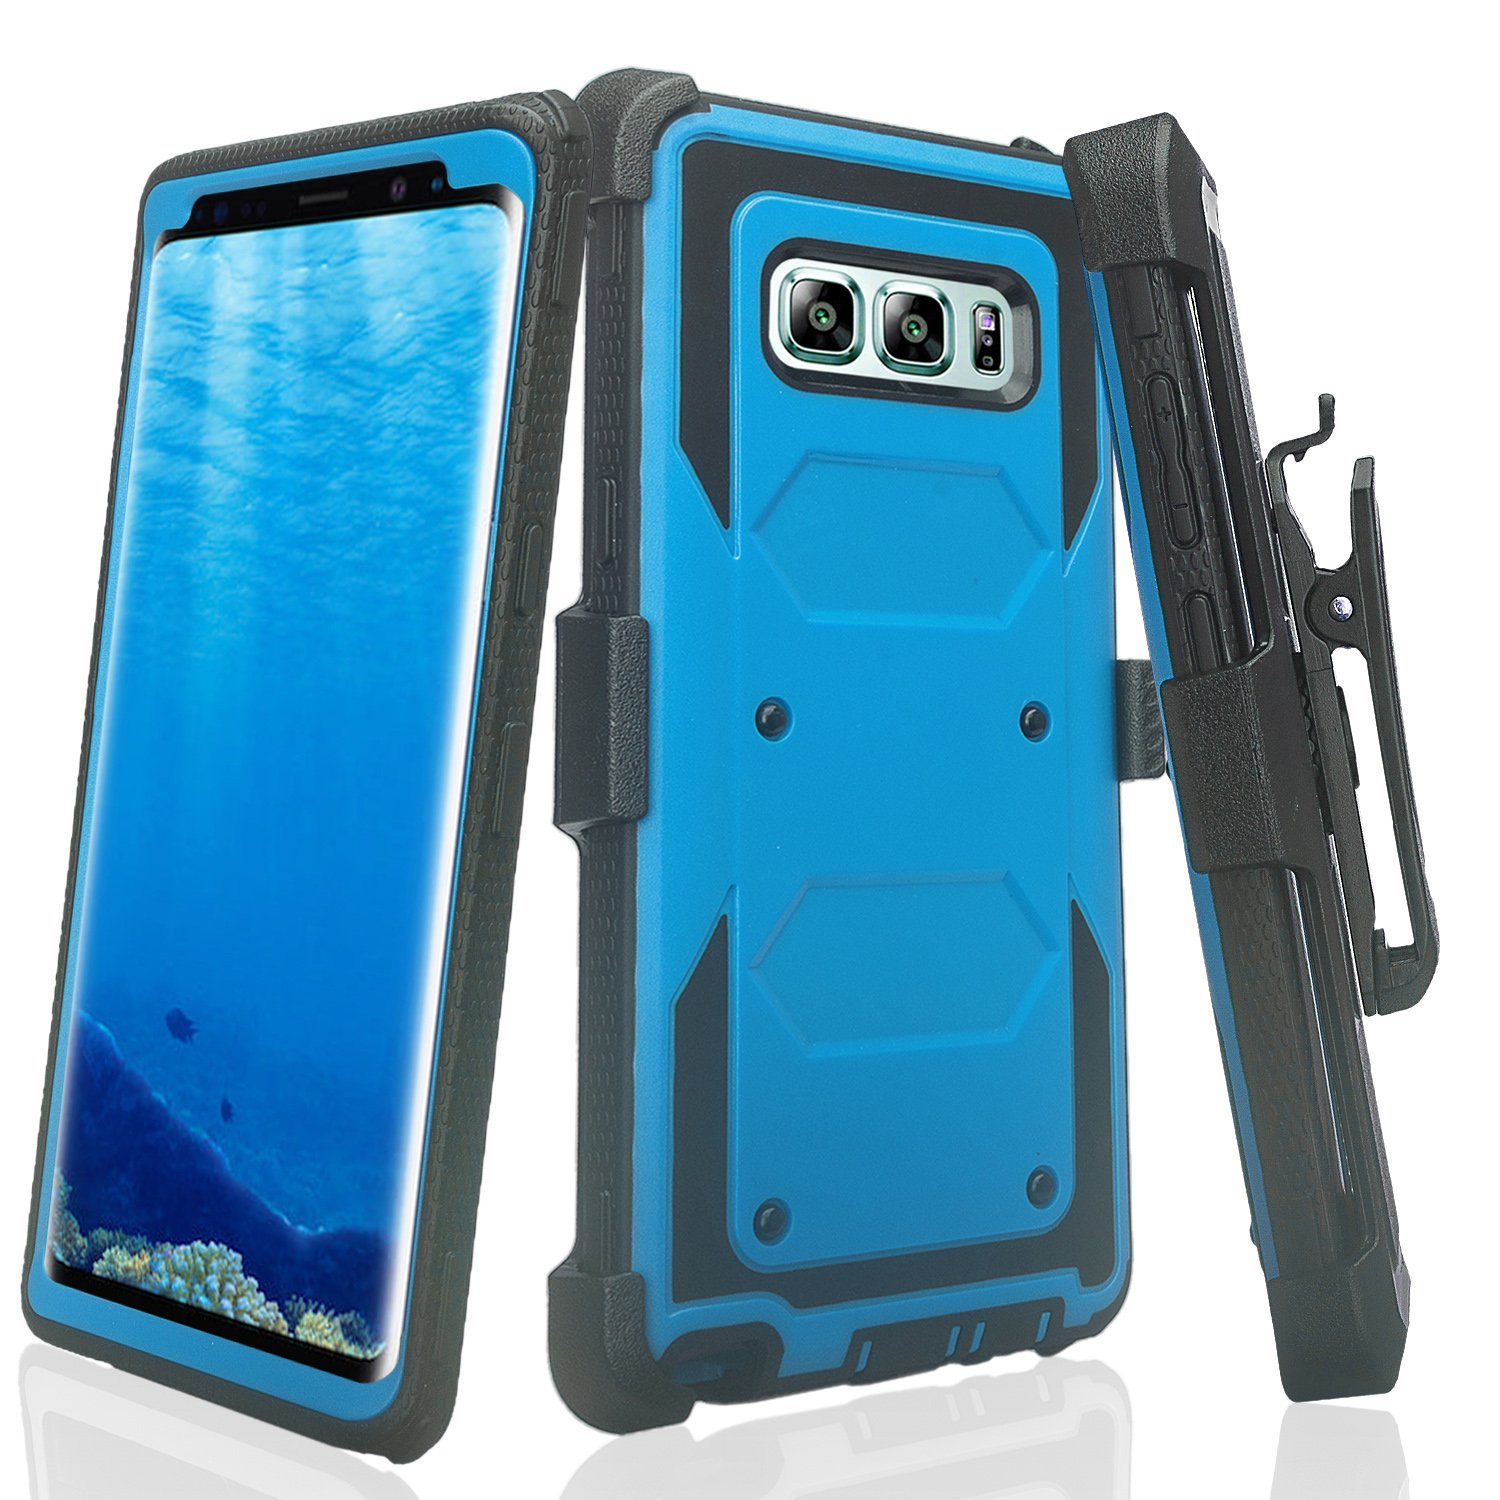 Samsung Galaxy Note 8 Case, Rugged Heavy Duty Holster Shell Combo Clip Cover - Purple